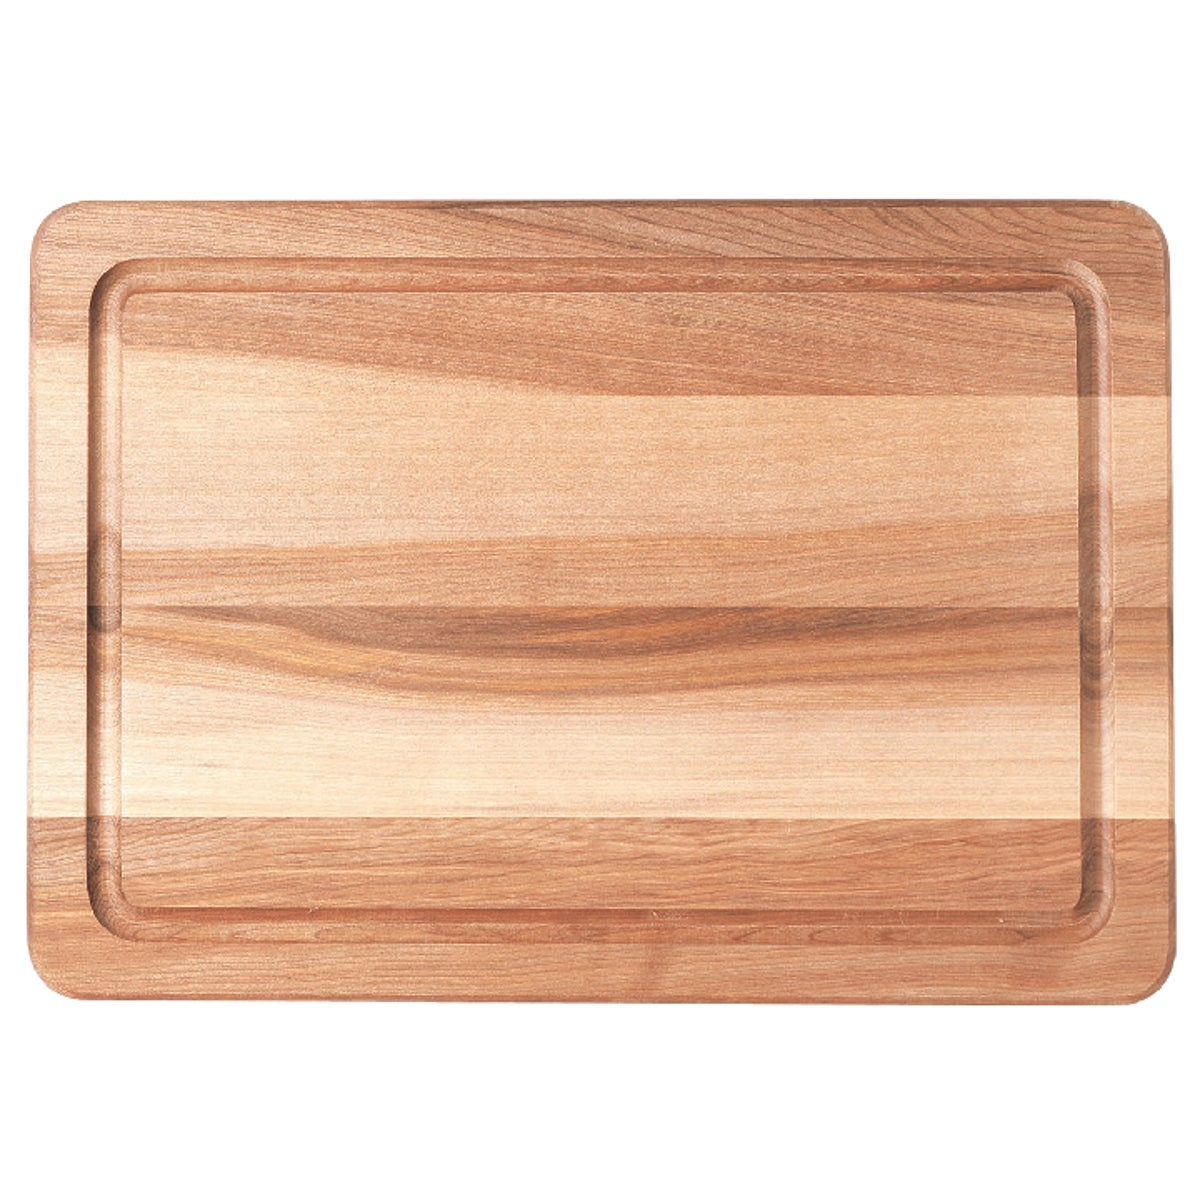 CUTTING BOARD - 8525 by Snow River Products